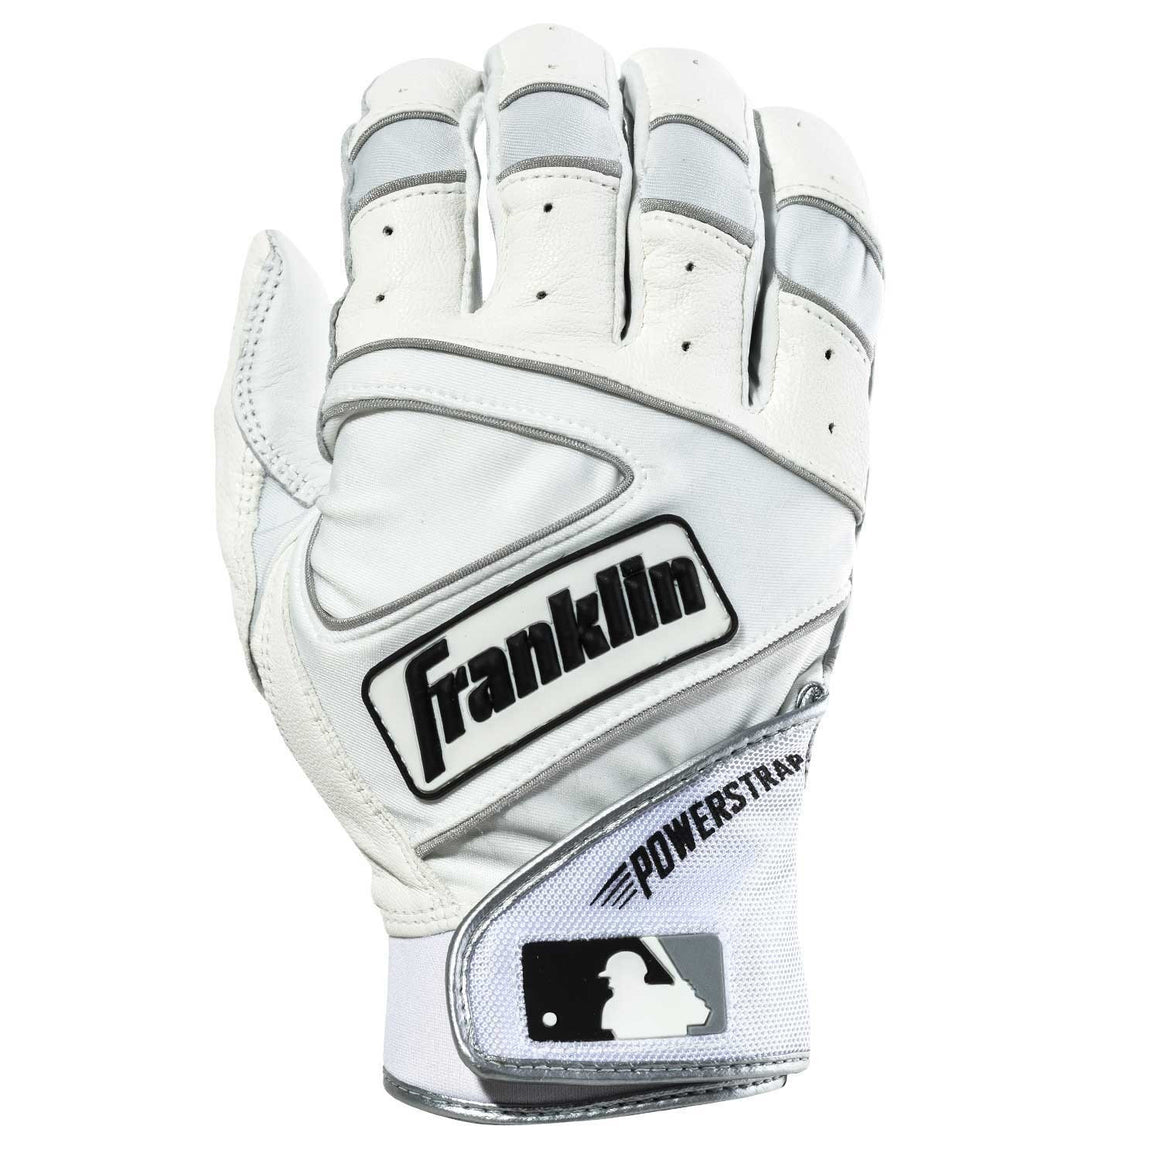 Franklin MLB Powerstrap Adult Batting Gloves, Pearl/White, Size Small